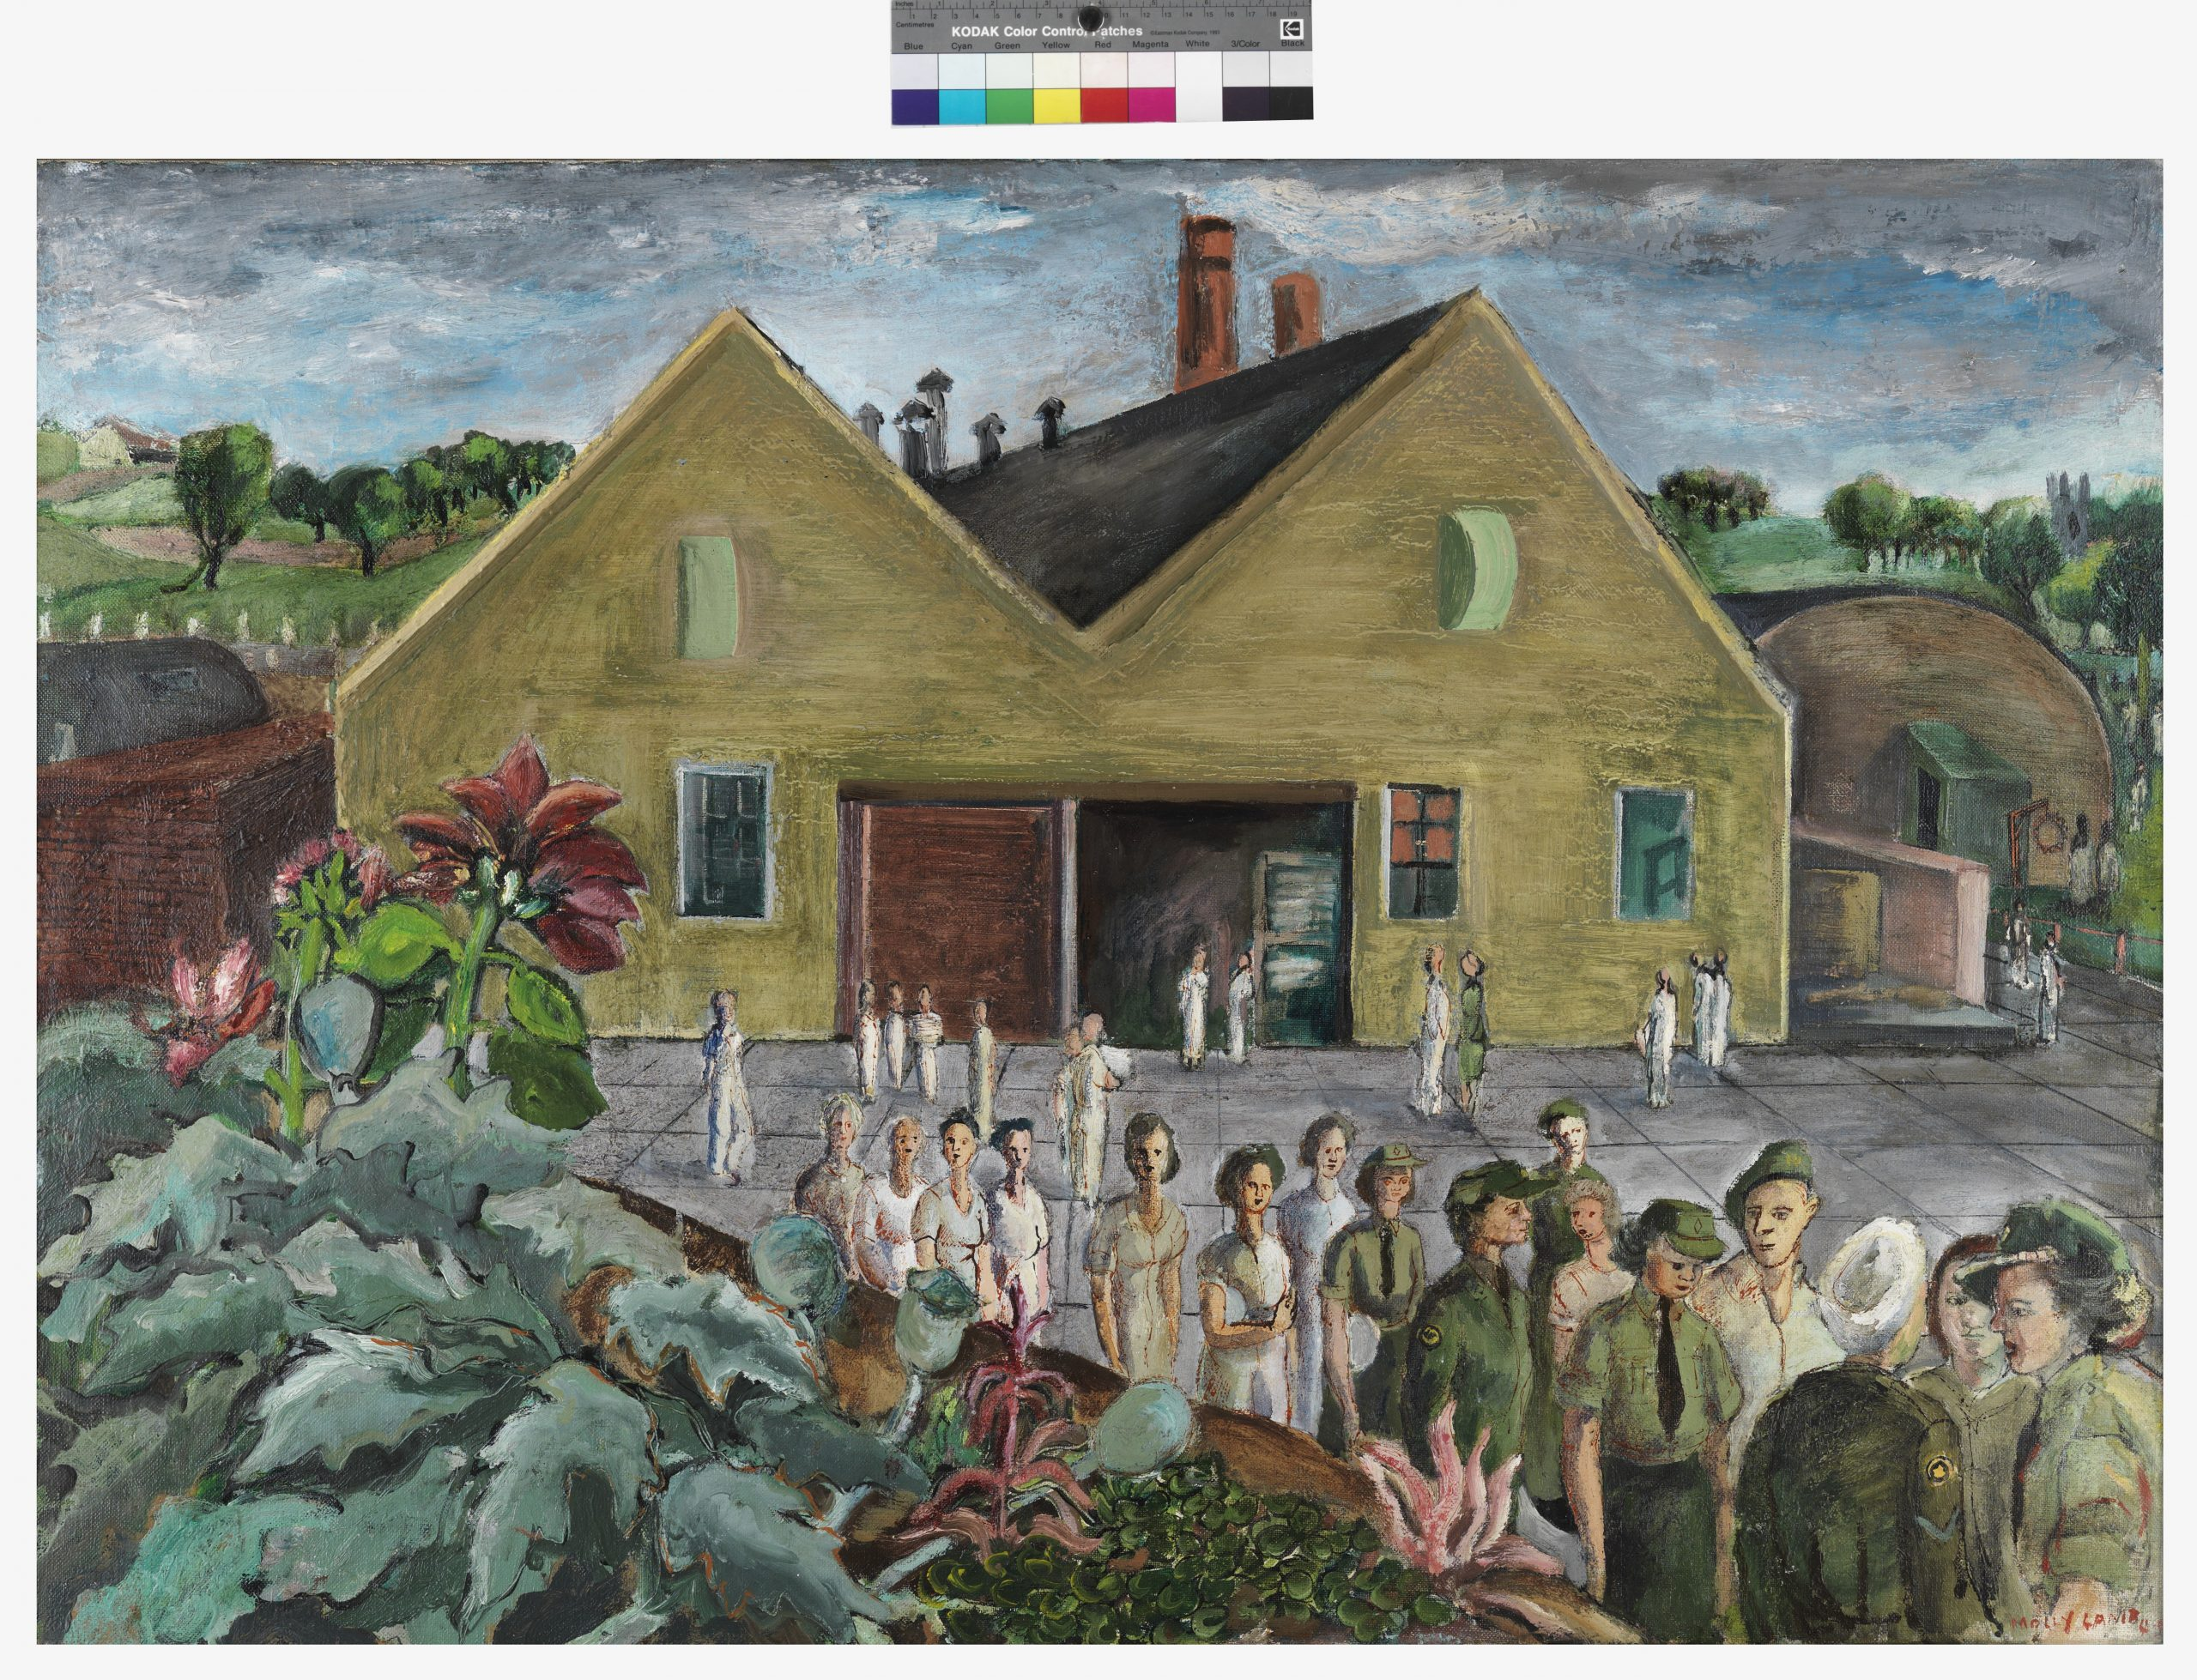 A colourful painting depicting a building and women (some in uniform) in a line, with rolling hills and trees in the background. This painting is the completed version of the painting on which Bobak is working in the photograph above